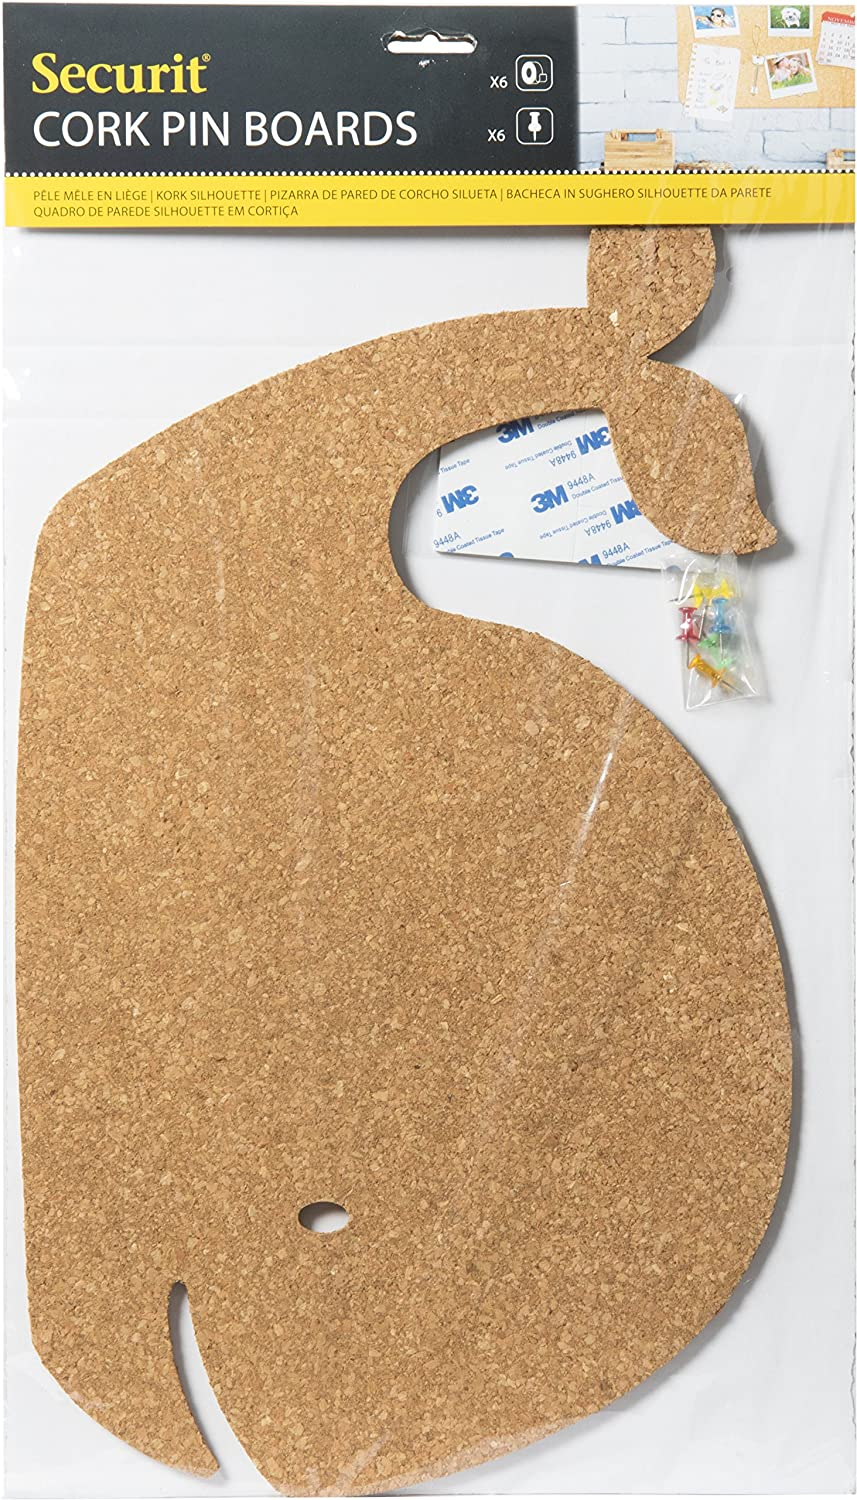 Amazon.com: Securit Wall Corkboard Whale & Pins: Toys & Games